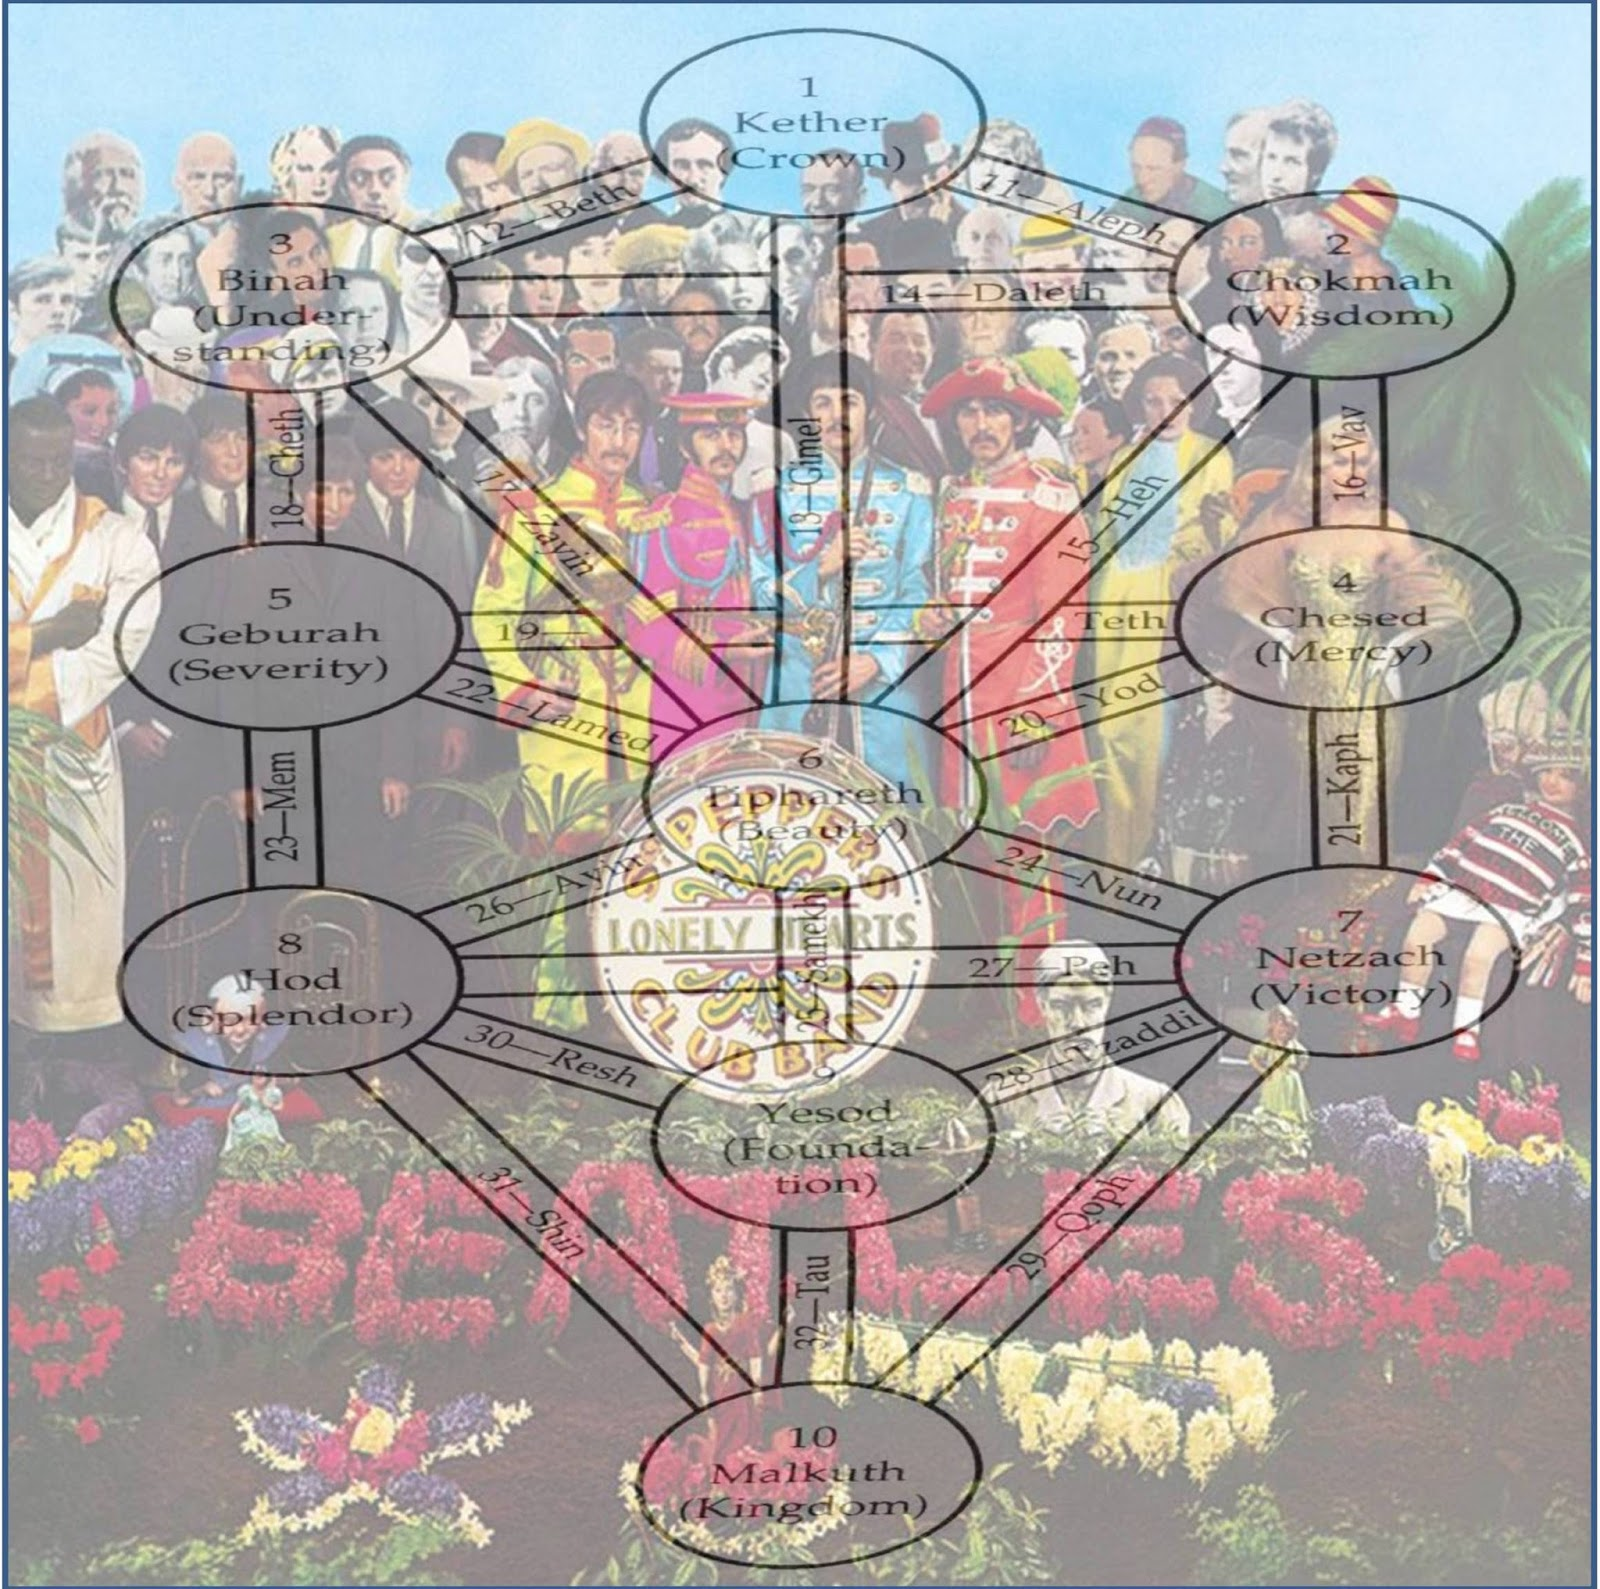 Beatles conspiracy issy a freemason it is unclear however wisdom denotes the tree of life and the forbidden fruit of the tree of life is of course an apple now the study of scripture has biocorpaavc Choice Image